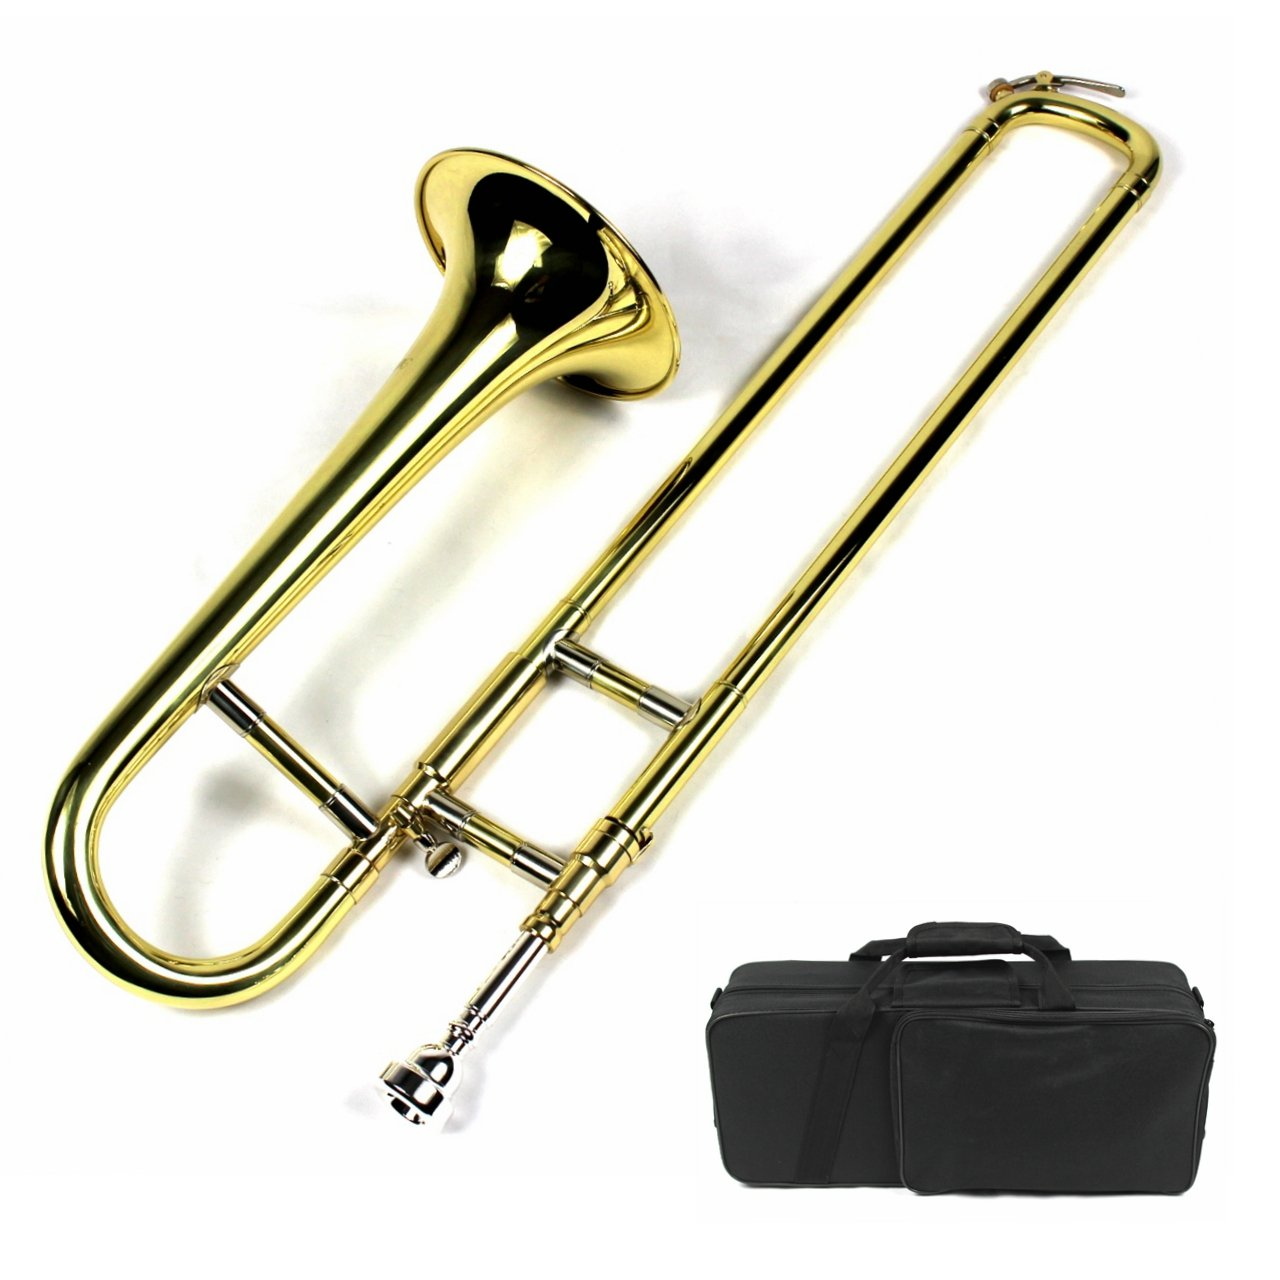 Brand New Bb Mini Trombone w/ Case and Mouthpiece- Gold Lacquer Finish by Moz (Image #1)